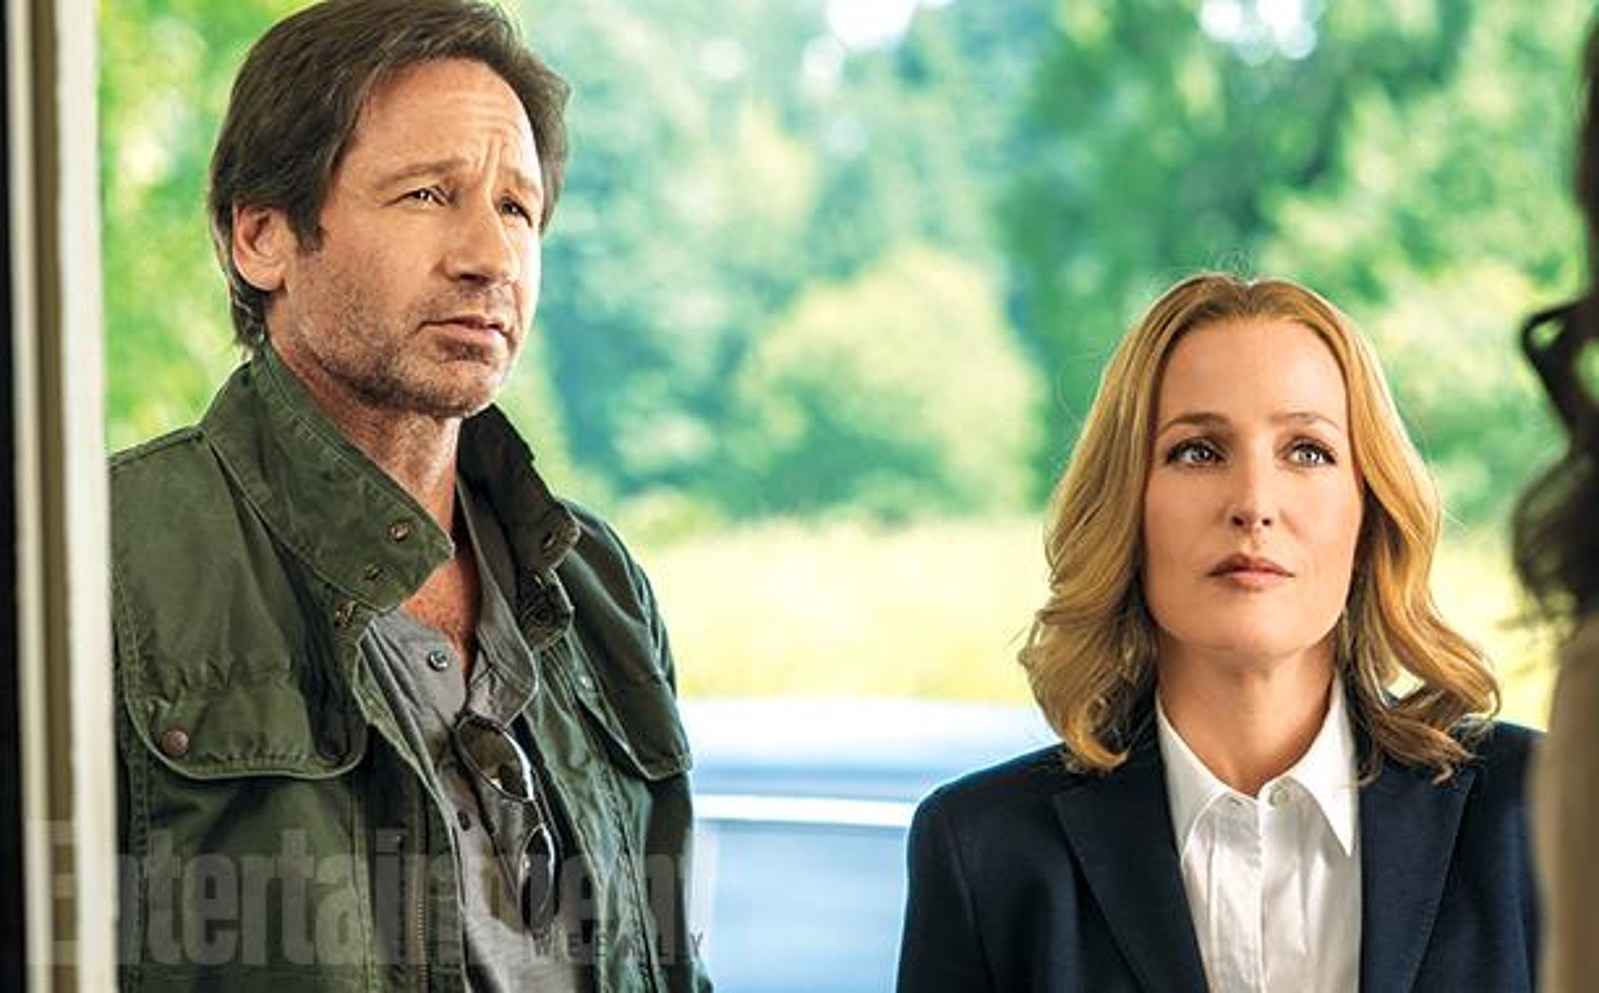 http://screencrush.com/442/files/2015/06/the-x-files.jpg?w=1600&cdnnode=1